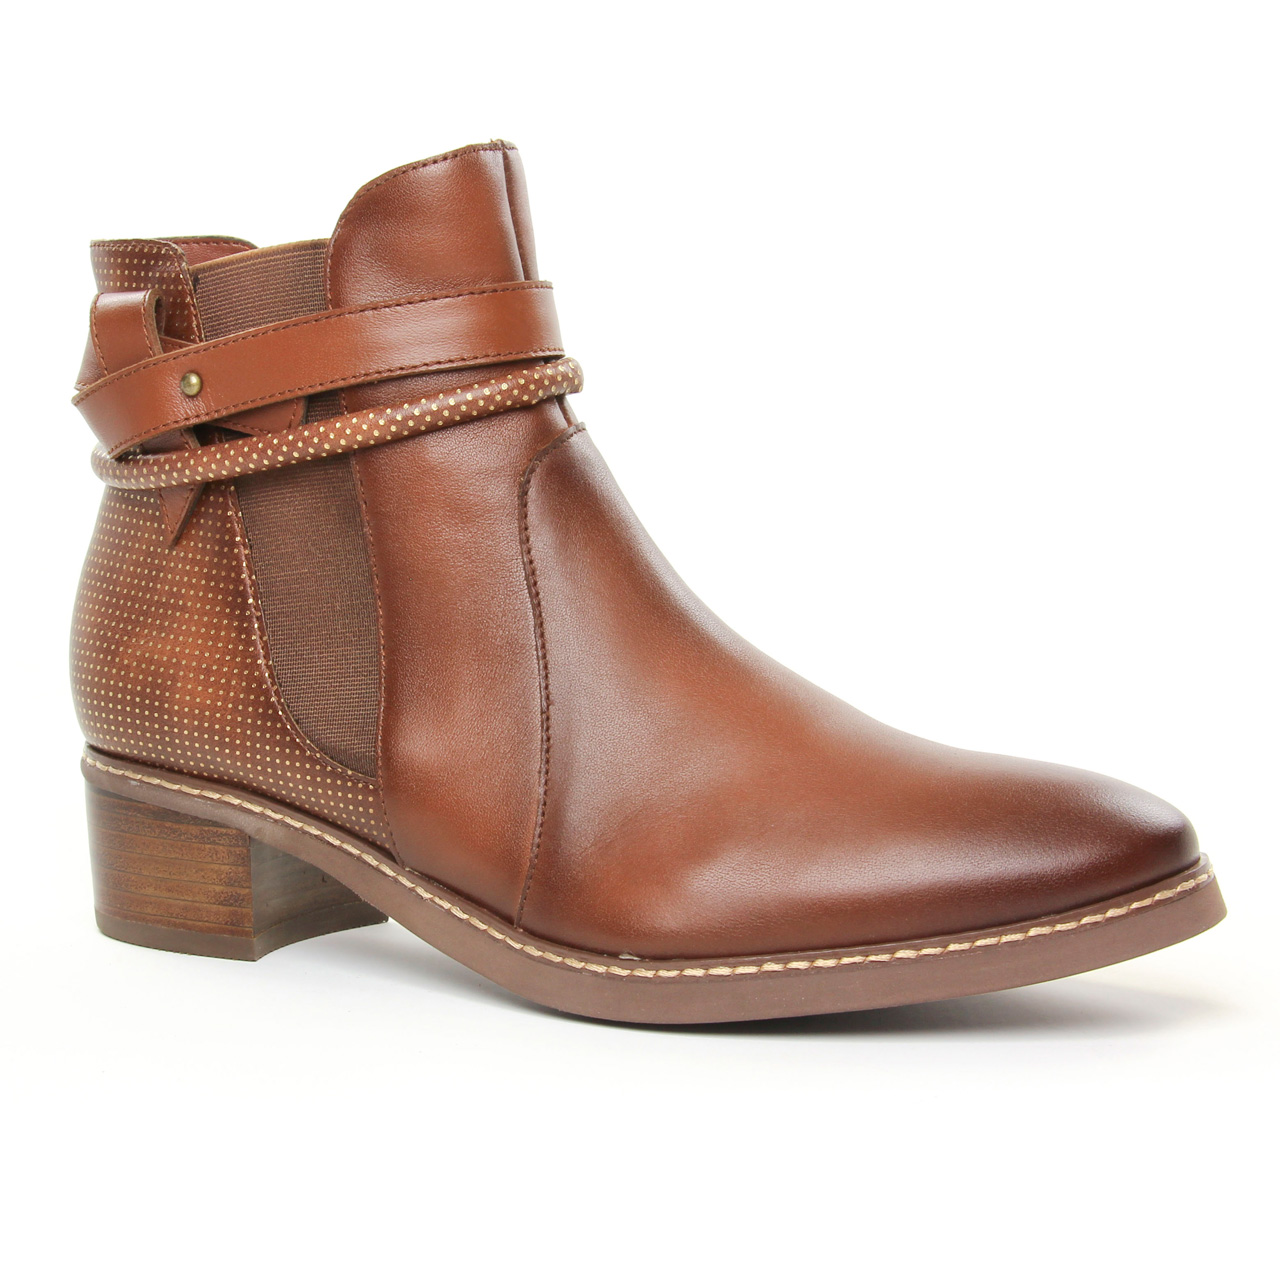 automne hiver Brownboot Jodhpur Fugitive Samia or marron dCtQhsrxoB